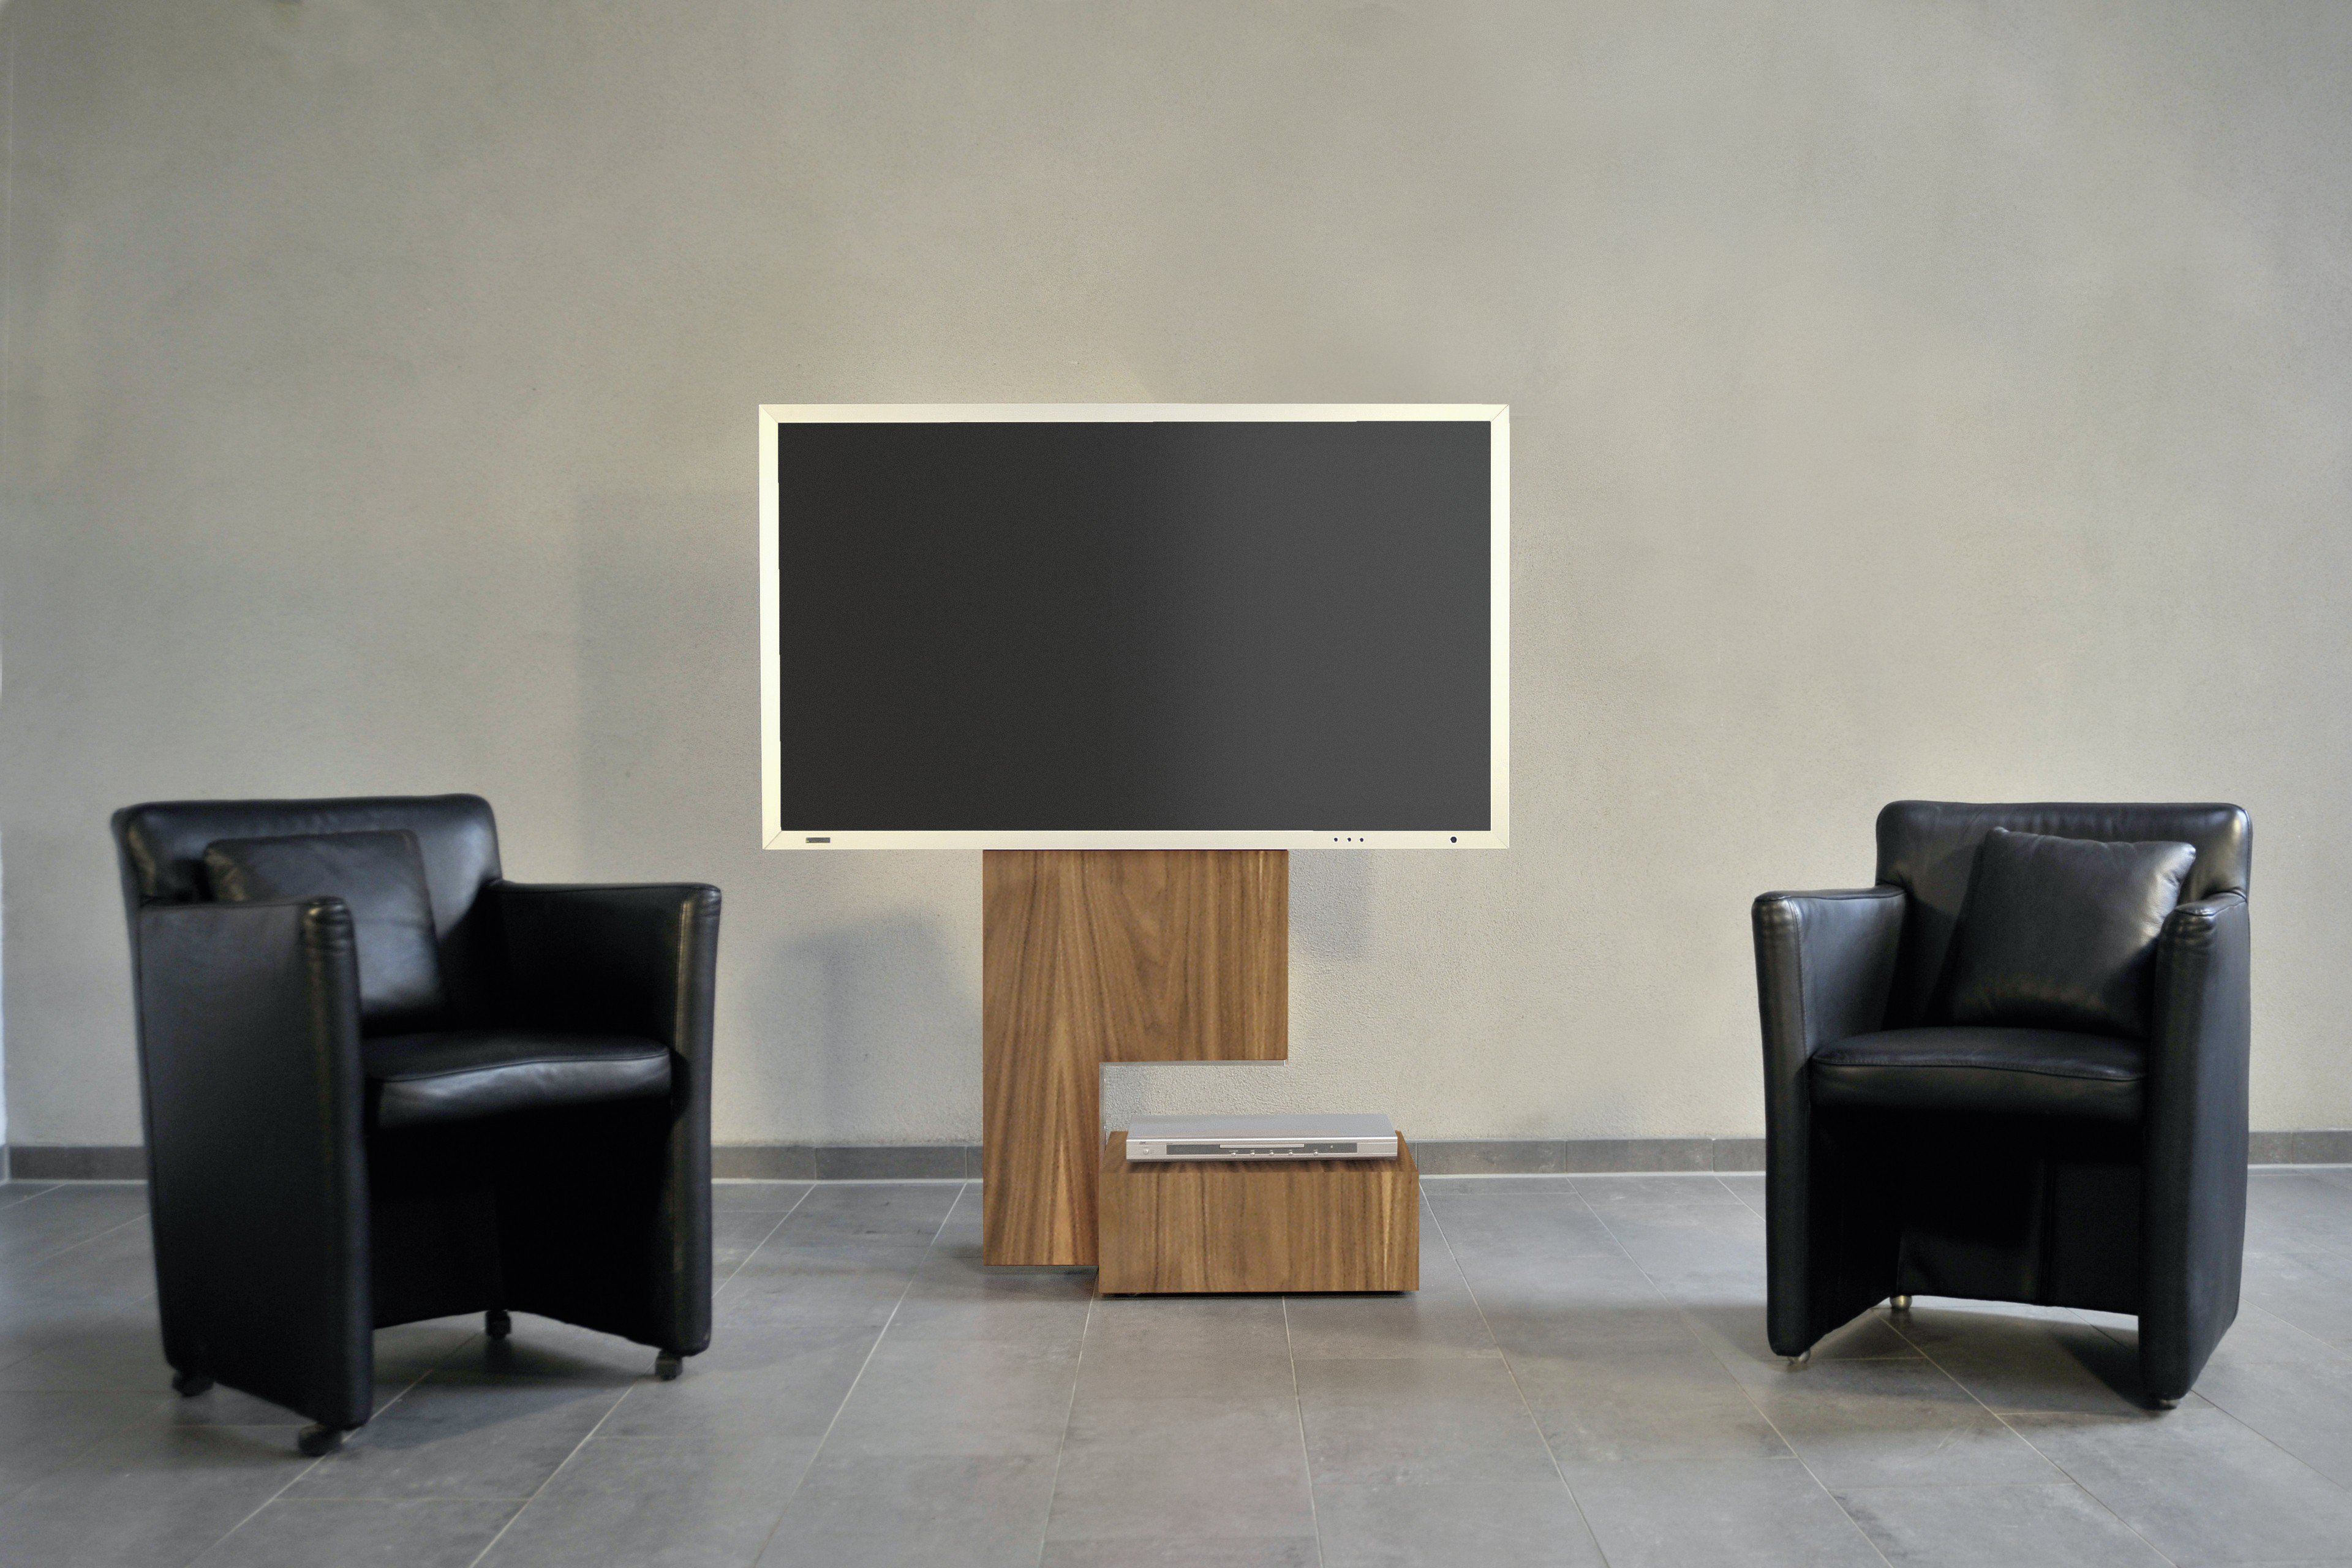 wissmann tv halter move art115 nussbaum m bel letz ihr. Black Bedroom Furniture Sets. Home Design Ideas